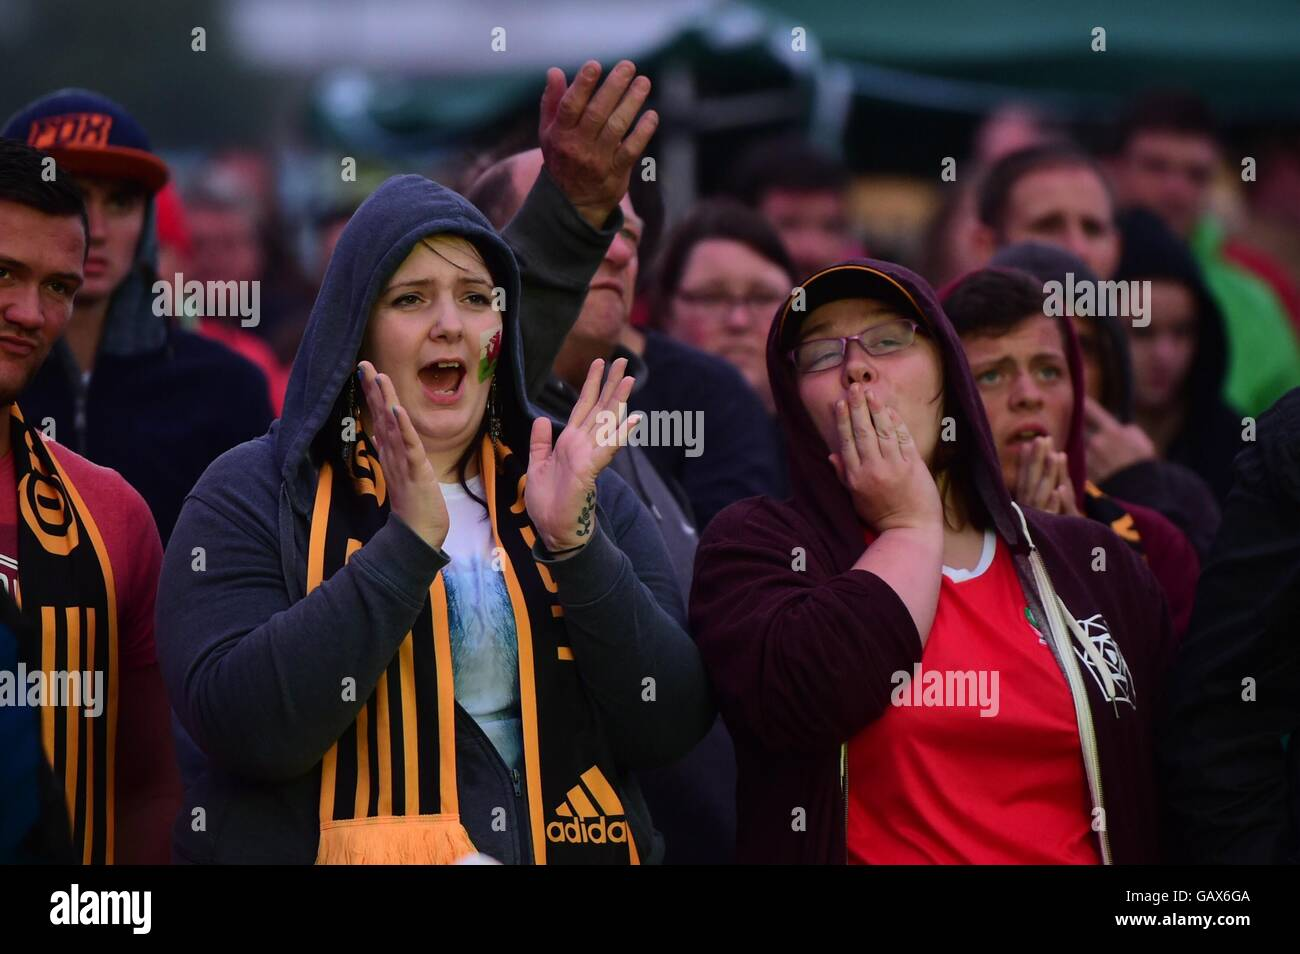 Aberystwyth Wales UK, Wednesday 06 July 2016  Hundred of avid Wales soccer fans gather at the 6m wide screen in Stock Photo